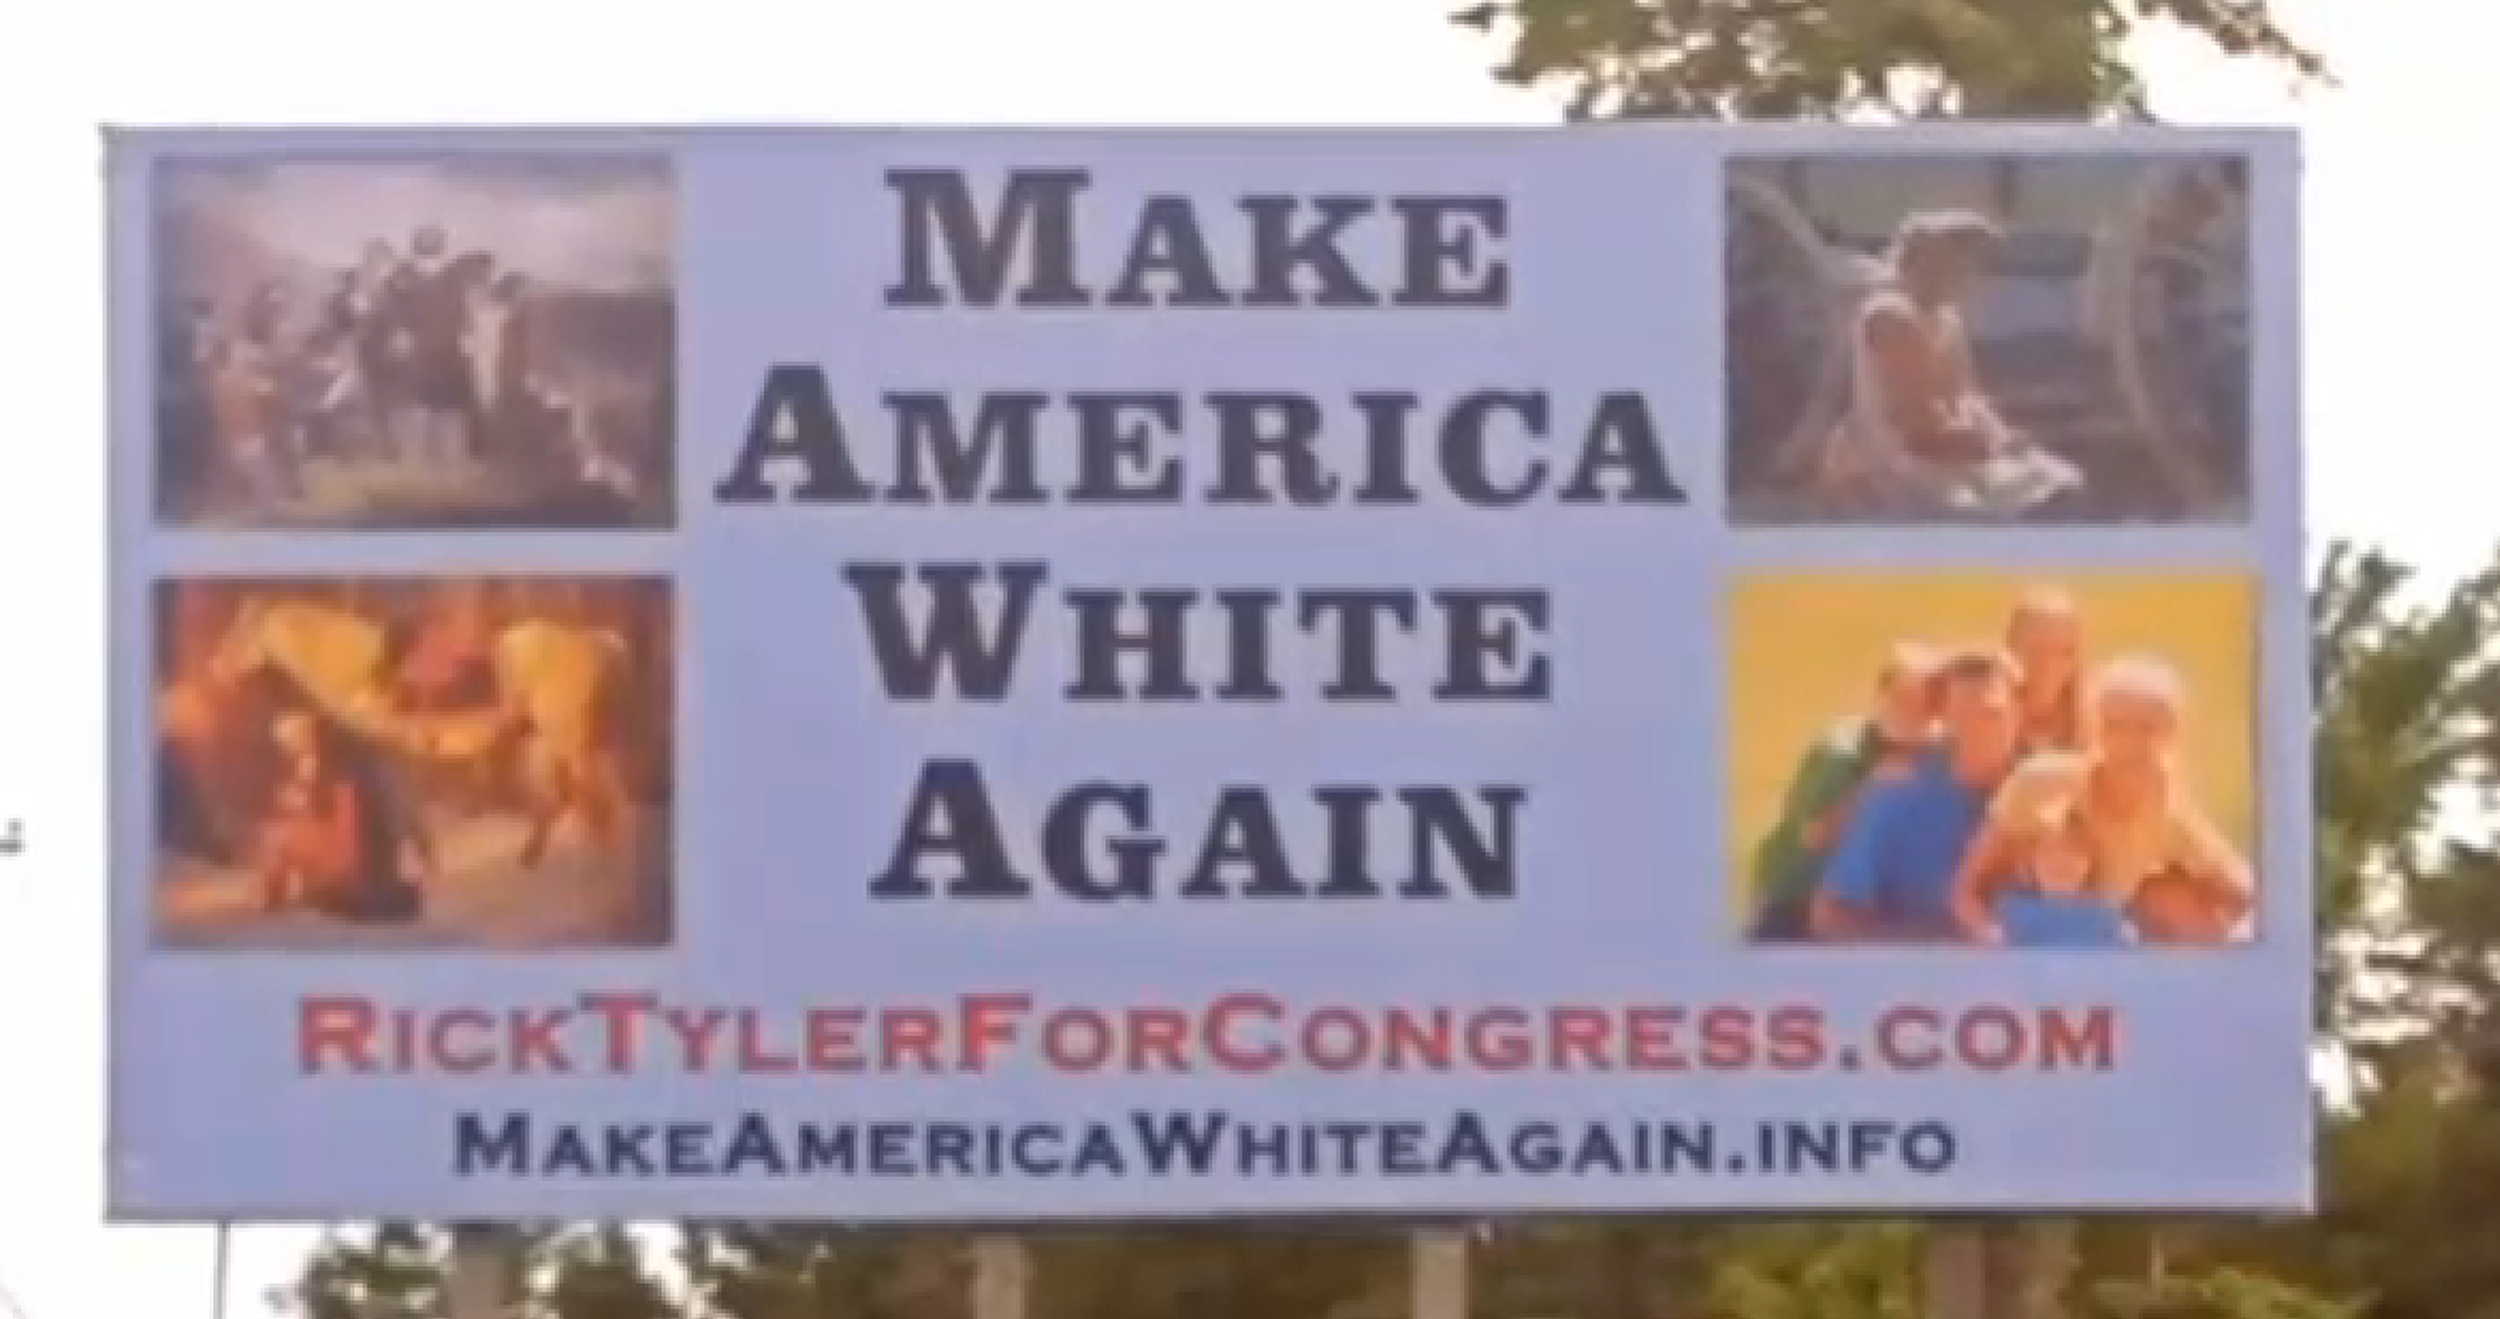 outrage as trump inspired candidate wants to make america white again